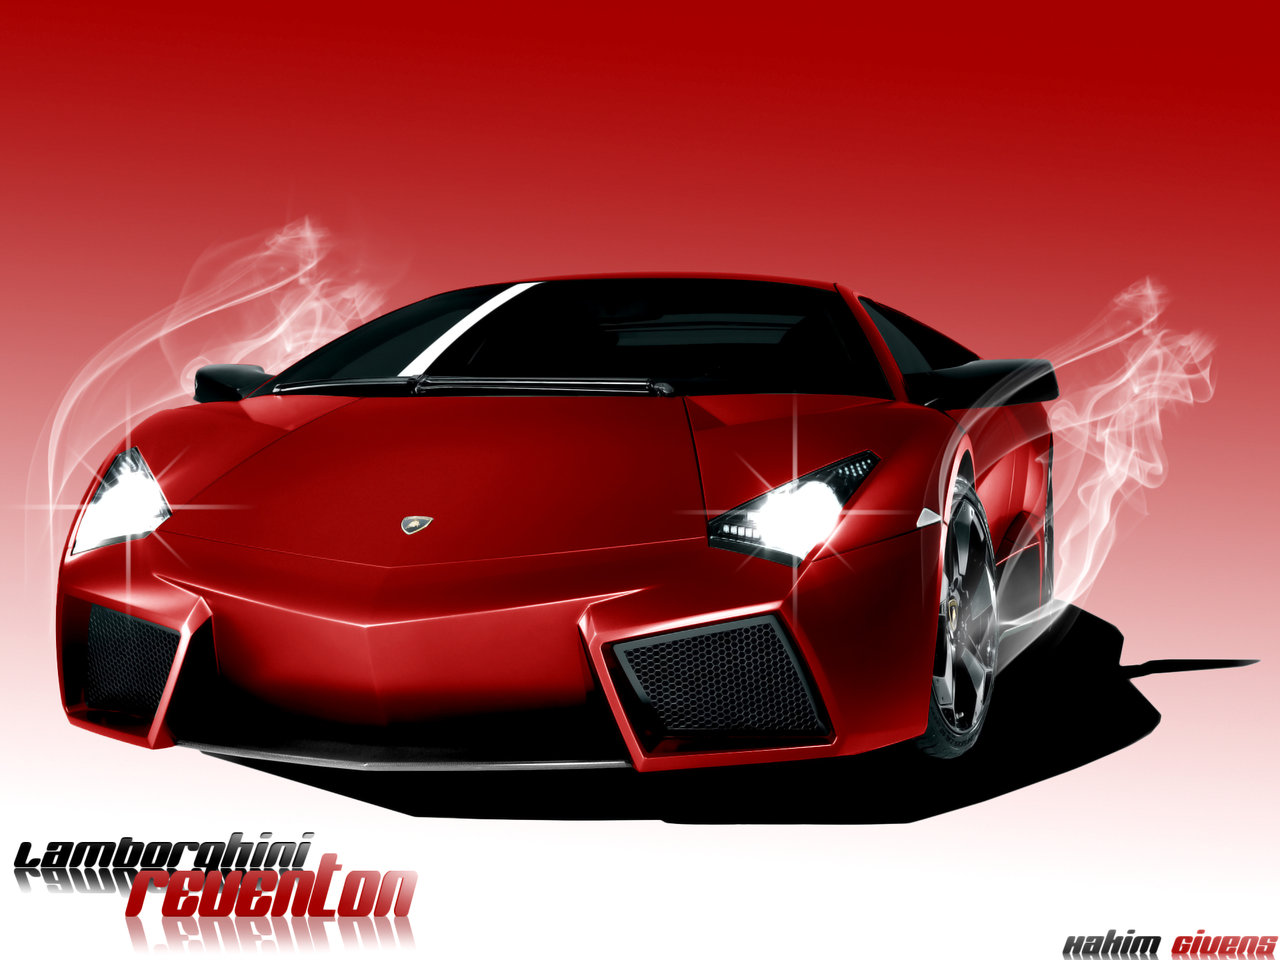 lamborghini reventon image wallpaper - photo #36